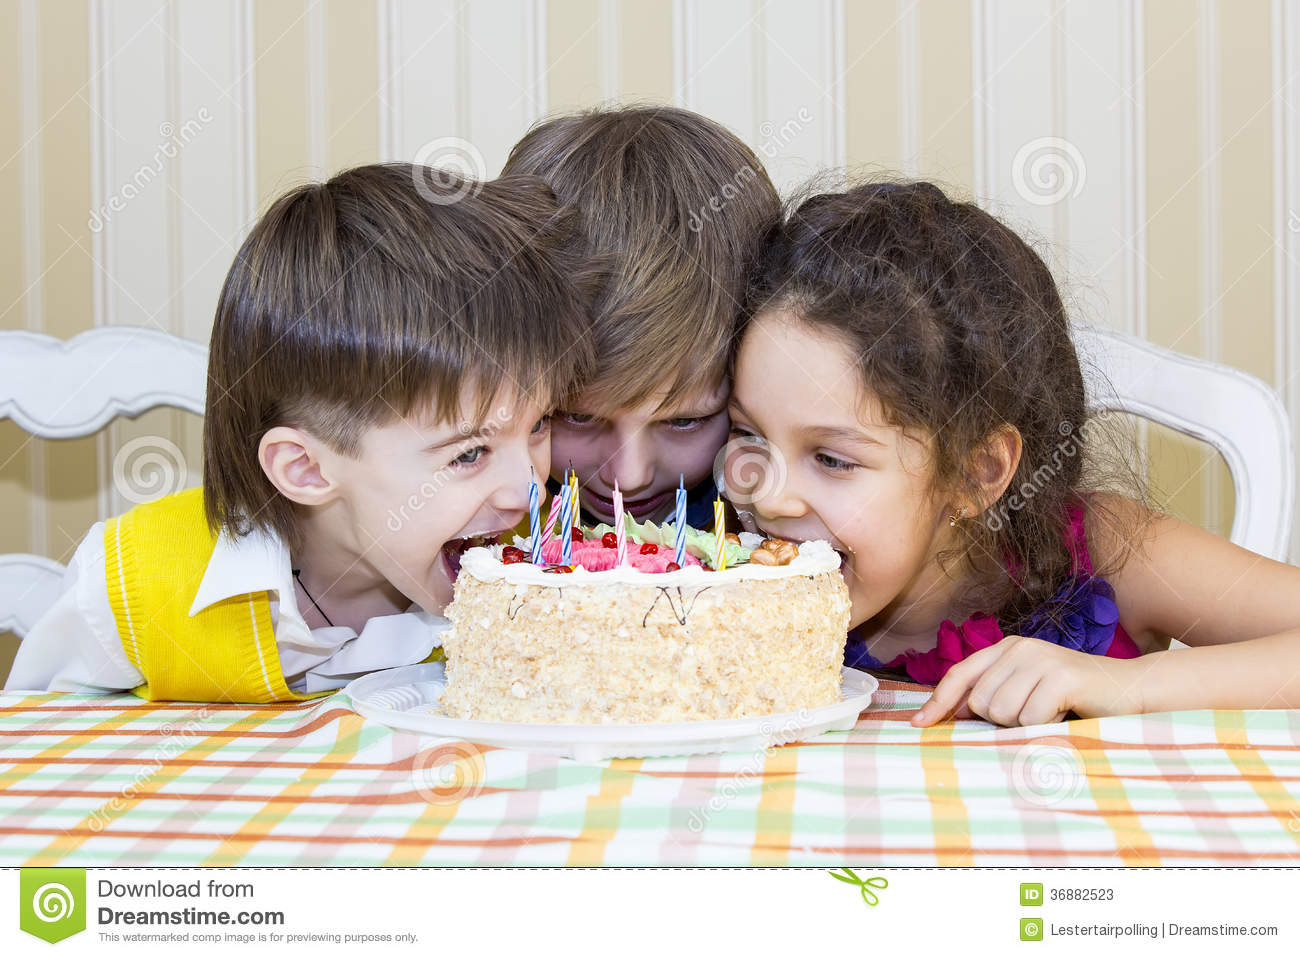 Clipart Eaten Birthday Cake Ideas and Designs